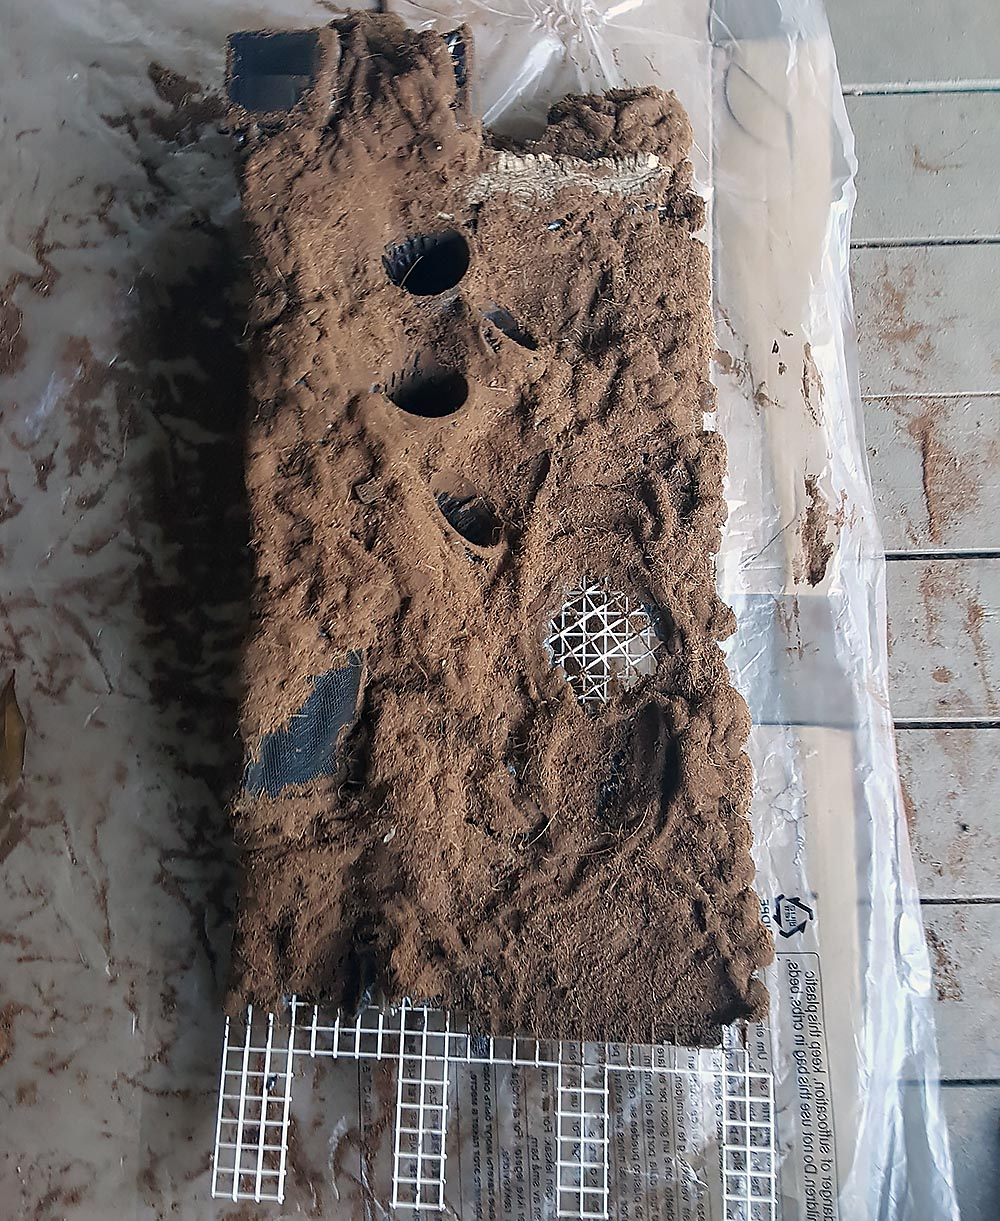 The foundation for the back wall of the vivarium, now foamed and covered to create a natural backdrop while concealing the air circulation system and drainage for the pots. Note the three cutouts at the base, in place to accommodate the bulkheads that move water and handle excess from the water under the false bottom.